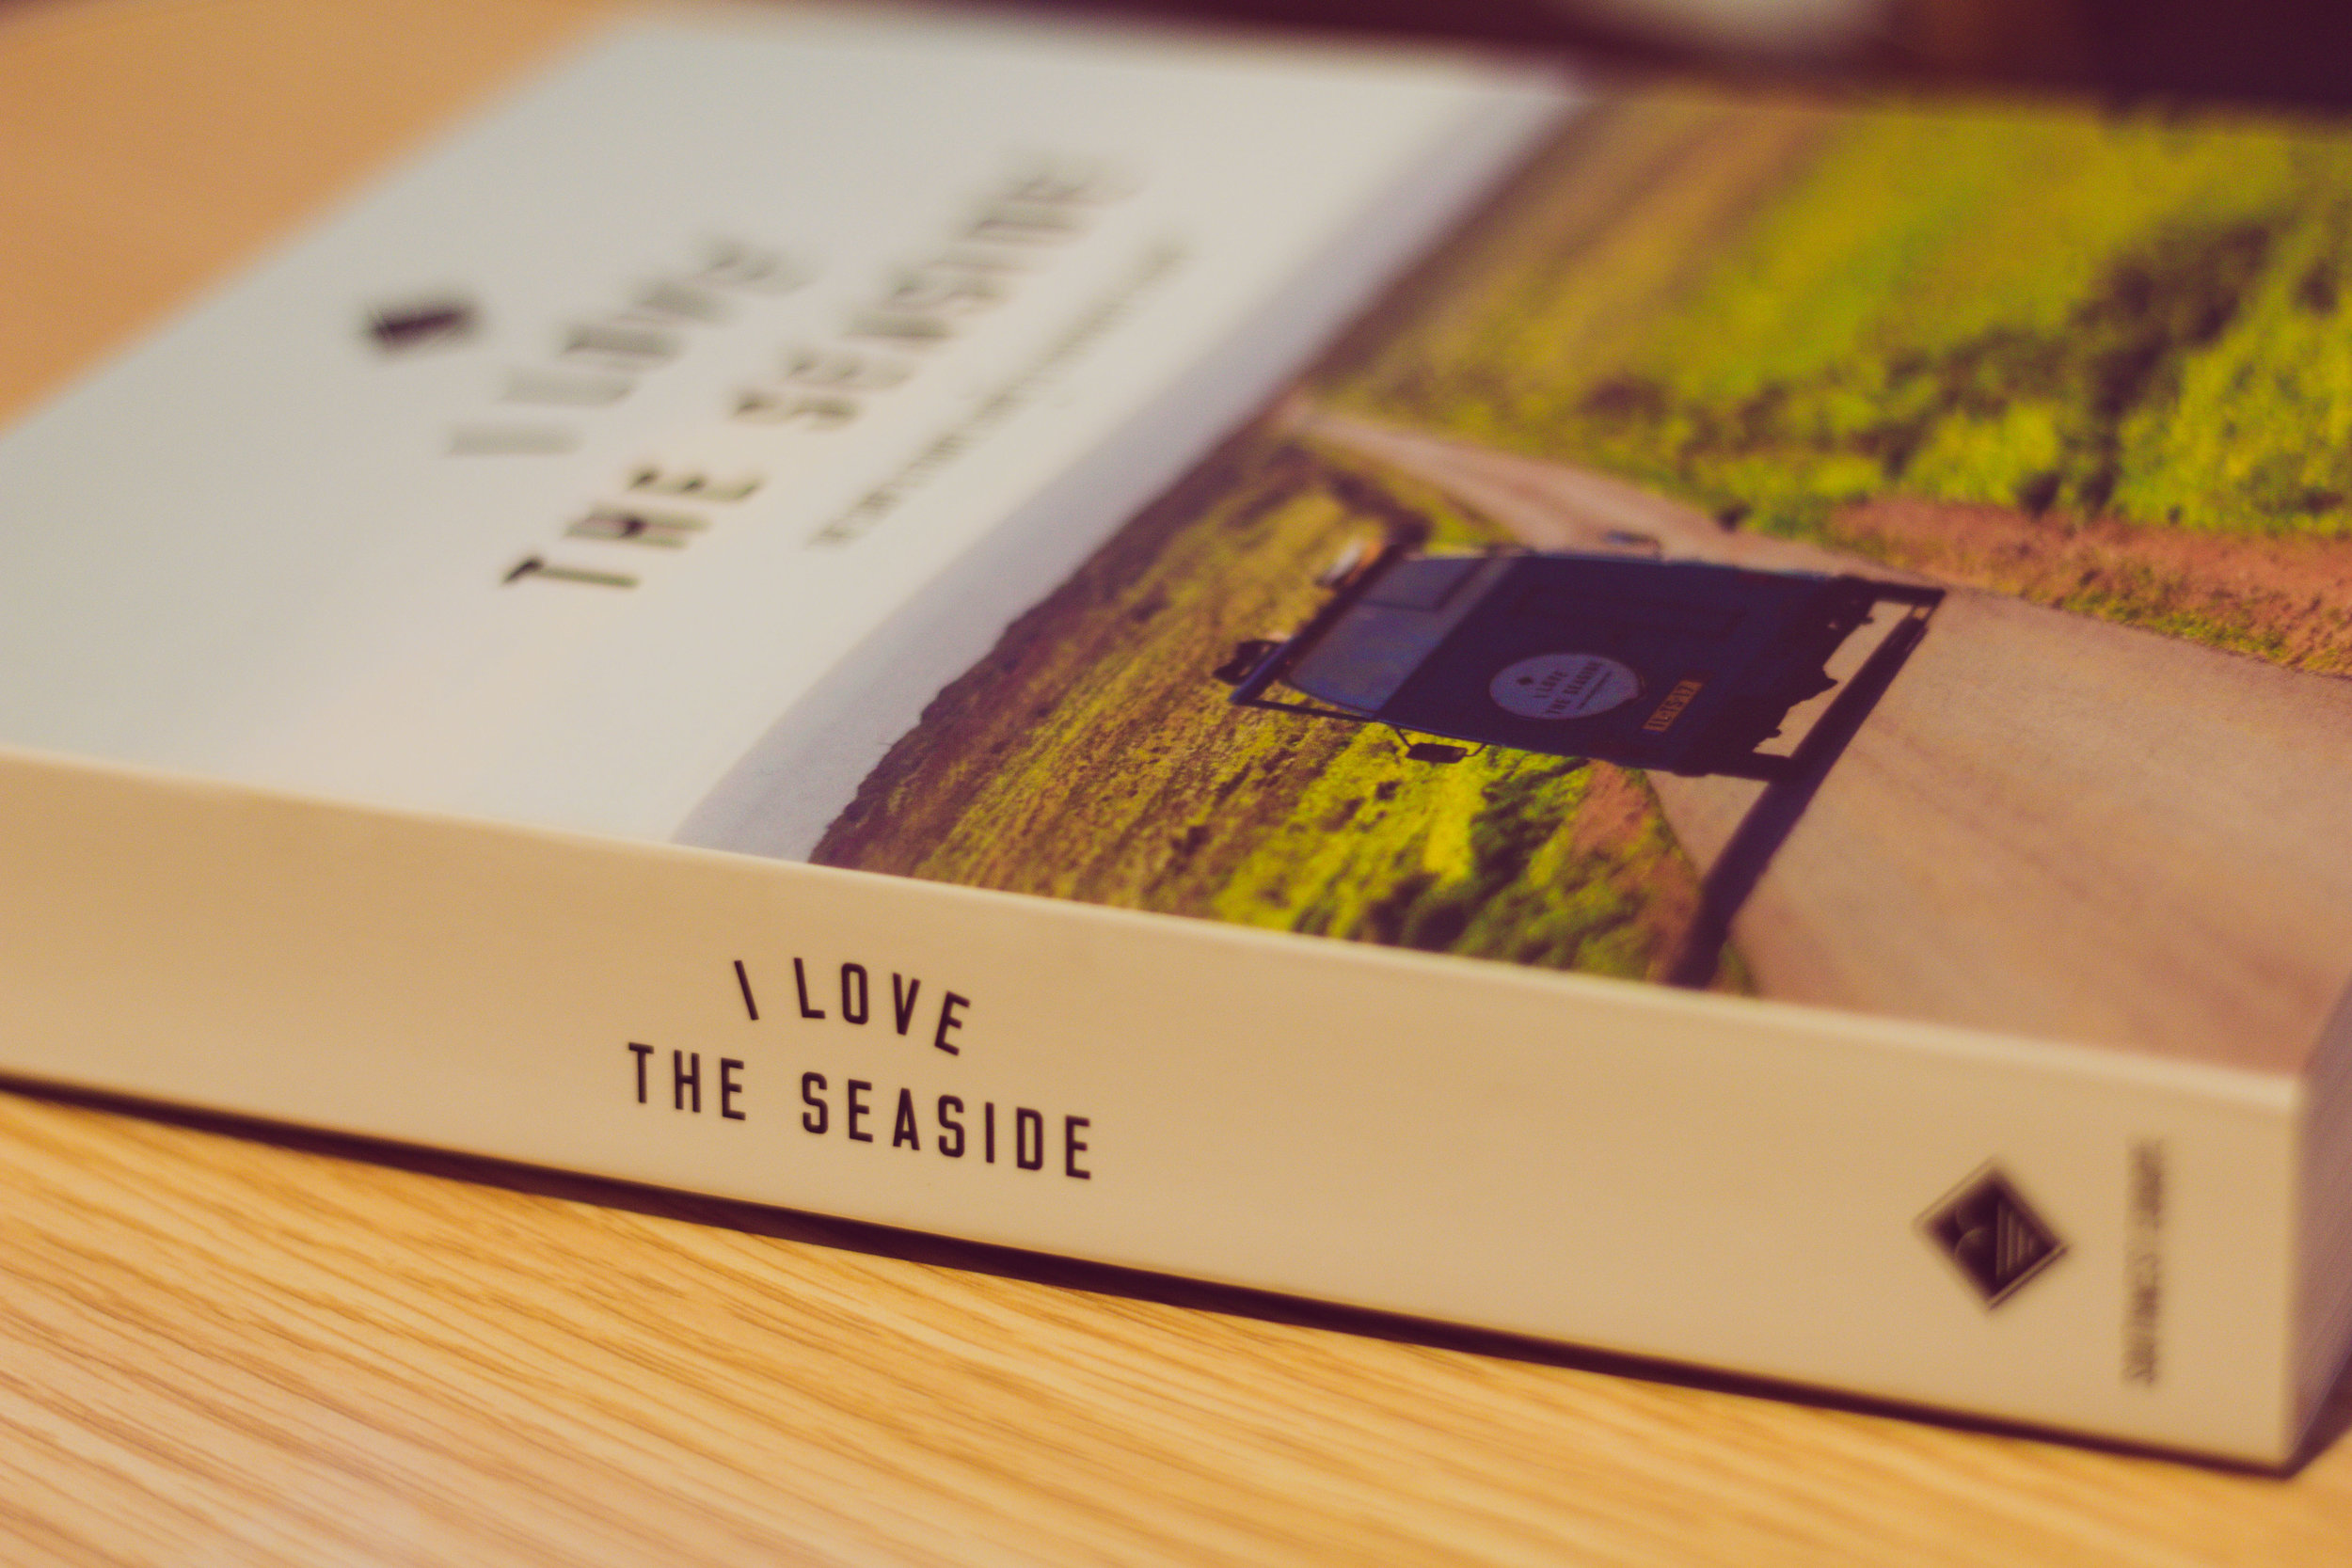 I LOVE THE SEASIDE - BOOKS | LIVROS